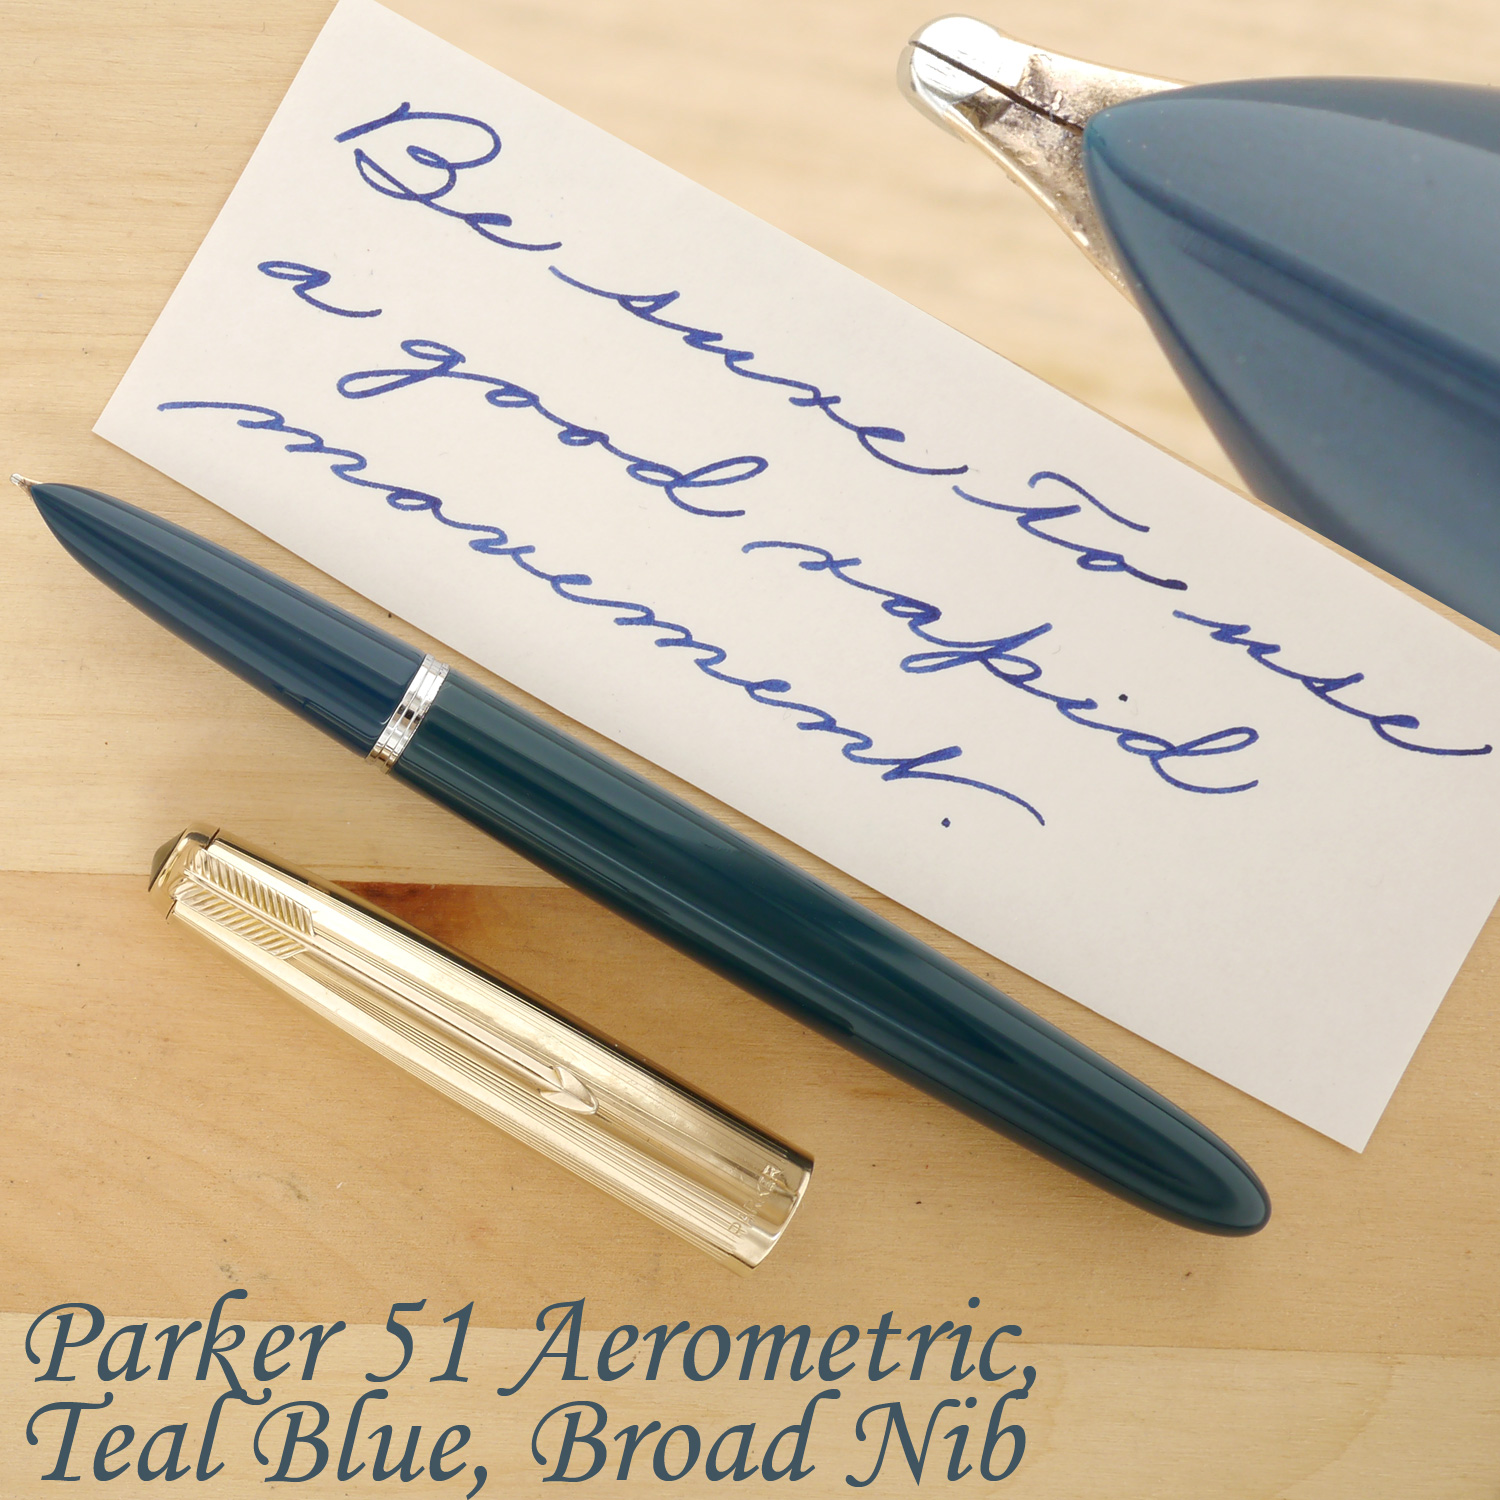 Parker 51 Aerometric, Teal Blue, B, uncapped